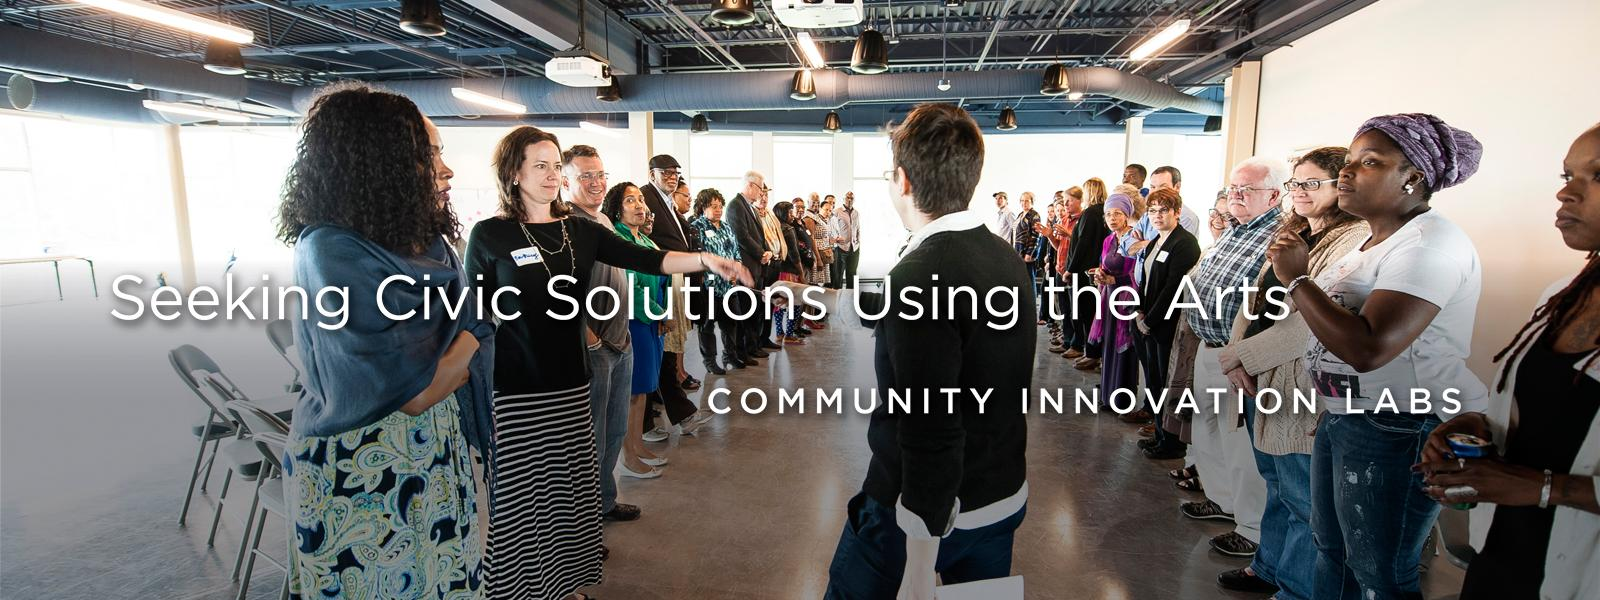 Seeking Civic Solutions Using the Arts - Community Innovation Labs